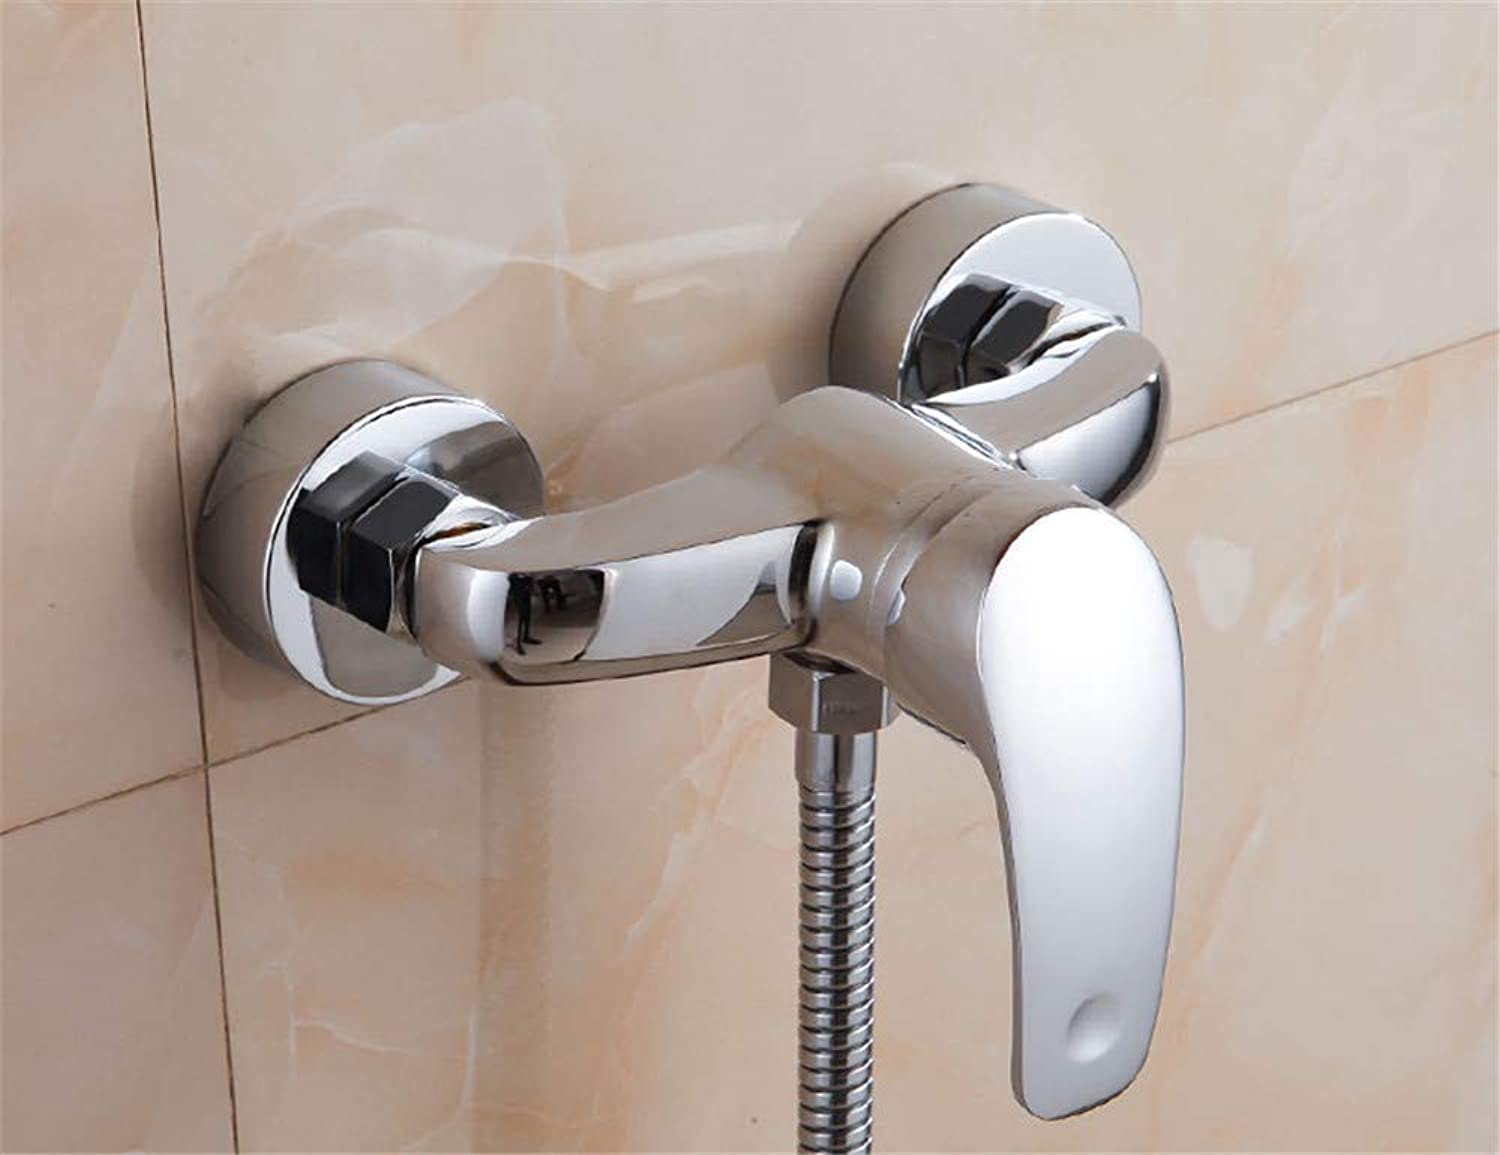 Guolaoer Faucet Wall-Mounted Simple Shower Head Concealed Shower Set???Silver White